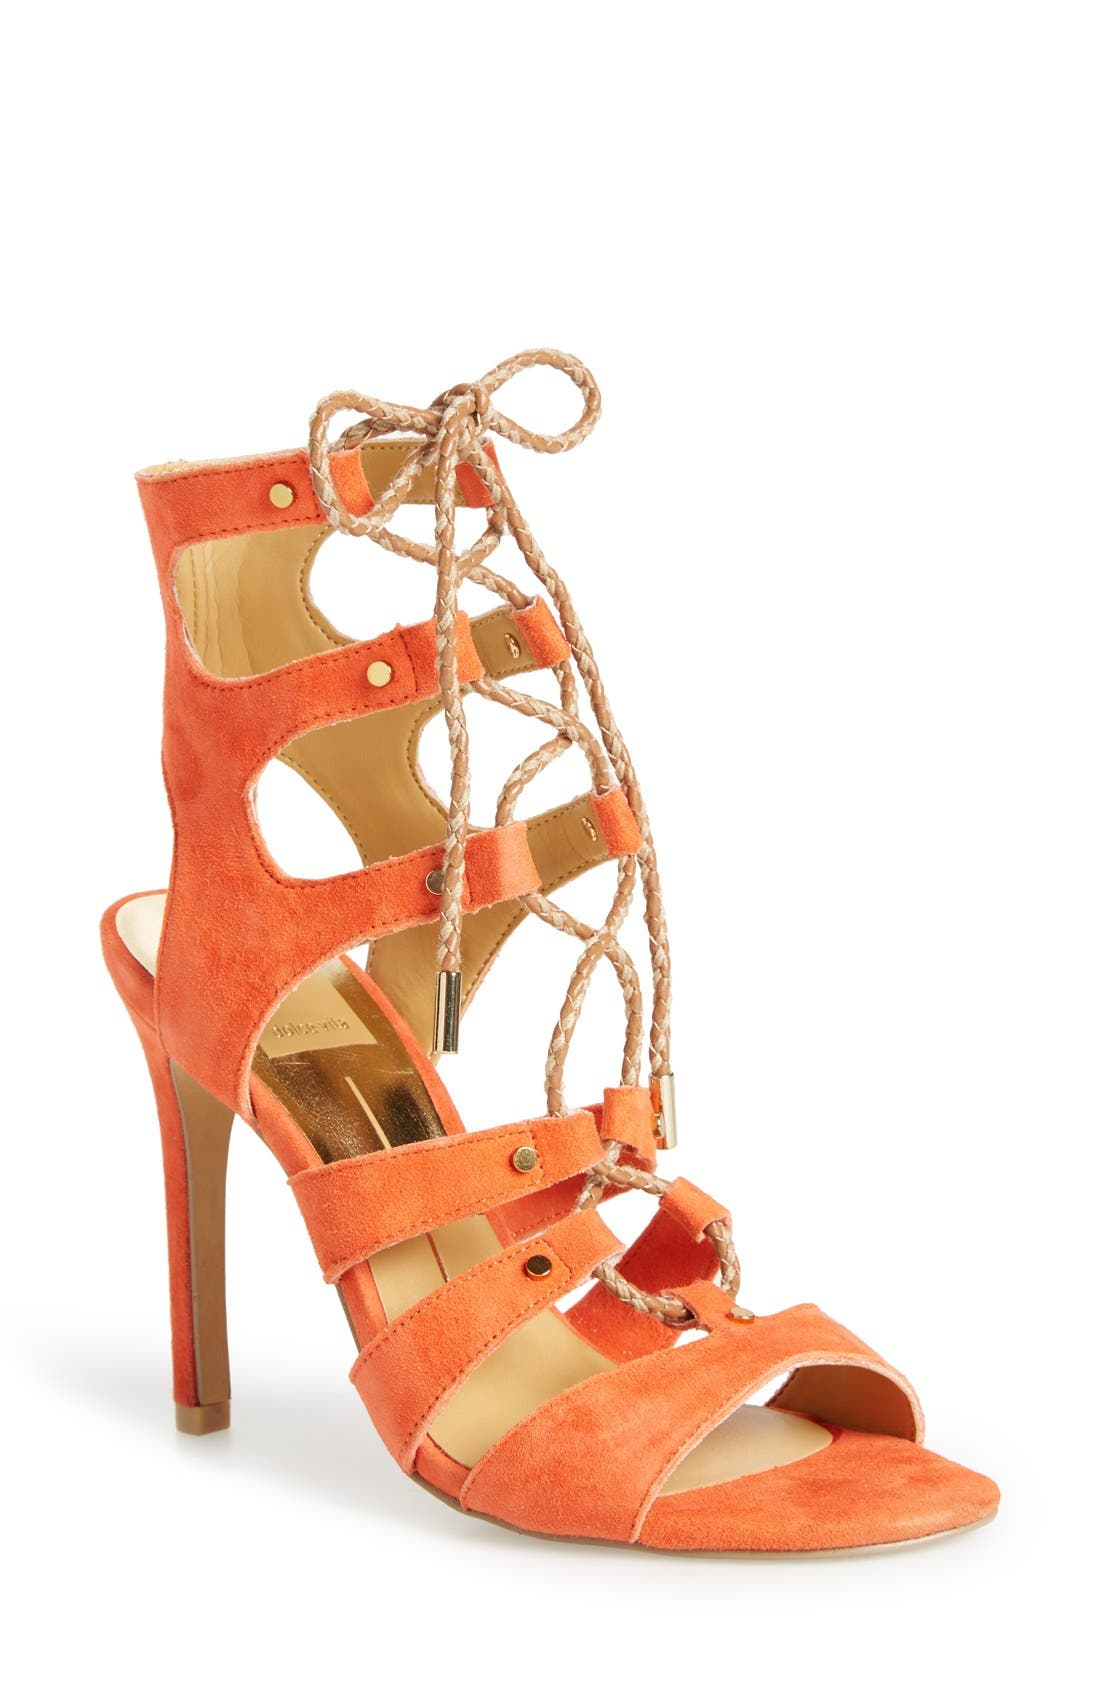 'Howie' Lace-Up Sandal,                             Main thumbnail 1, color,                             Red Orange Suede